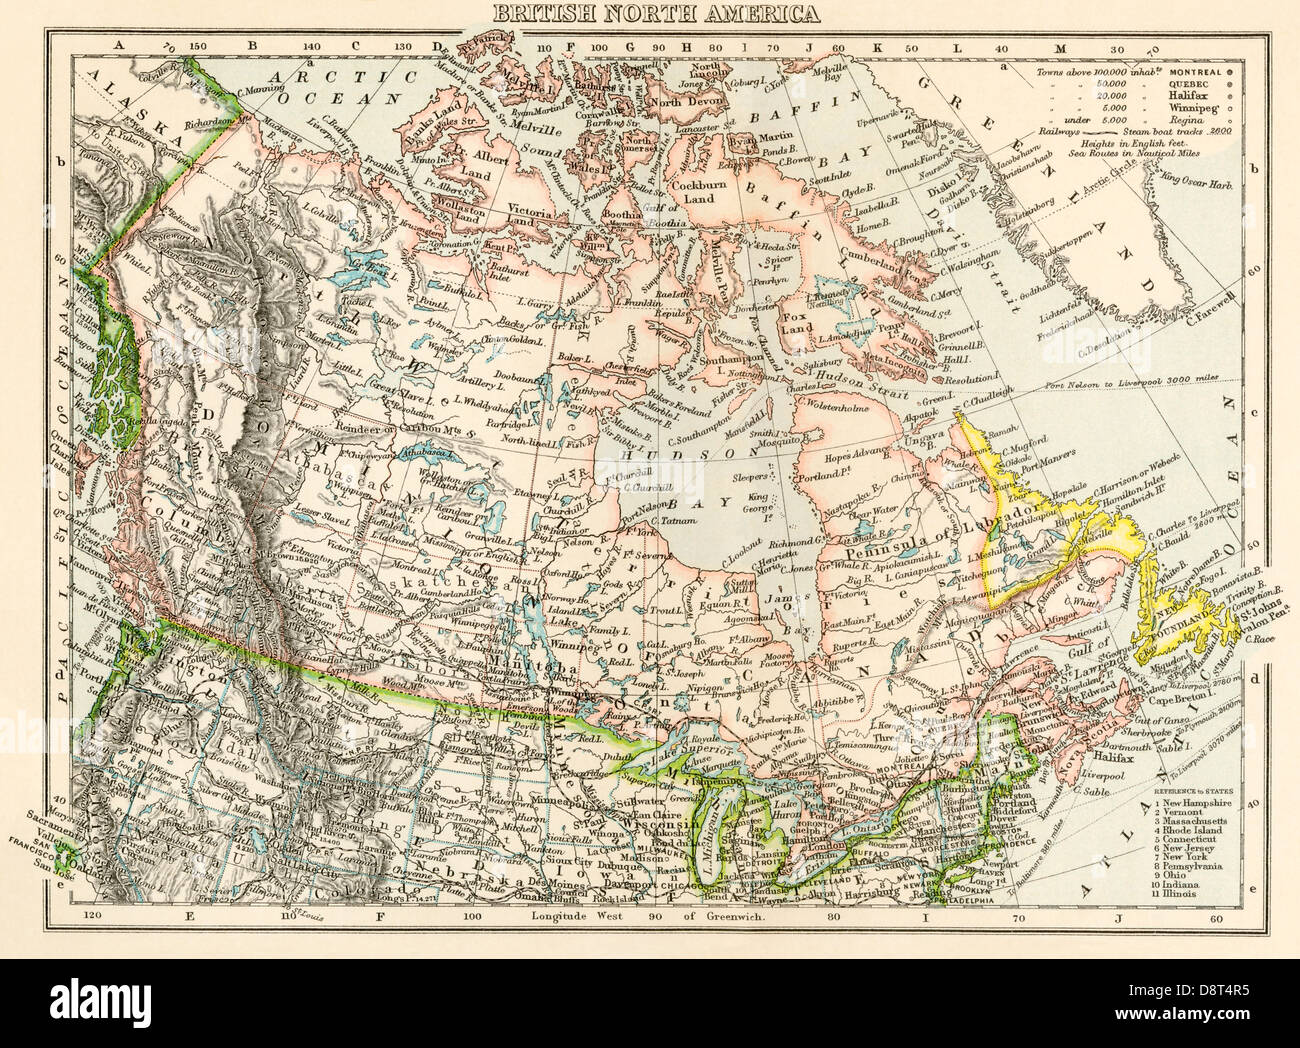 map of british north america or the dominion of canada 1870s